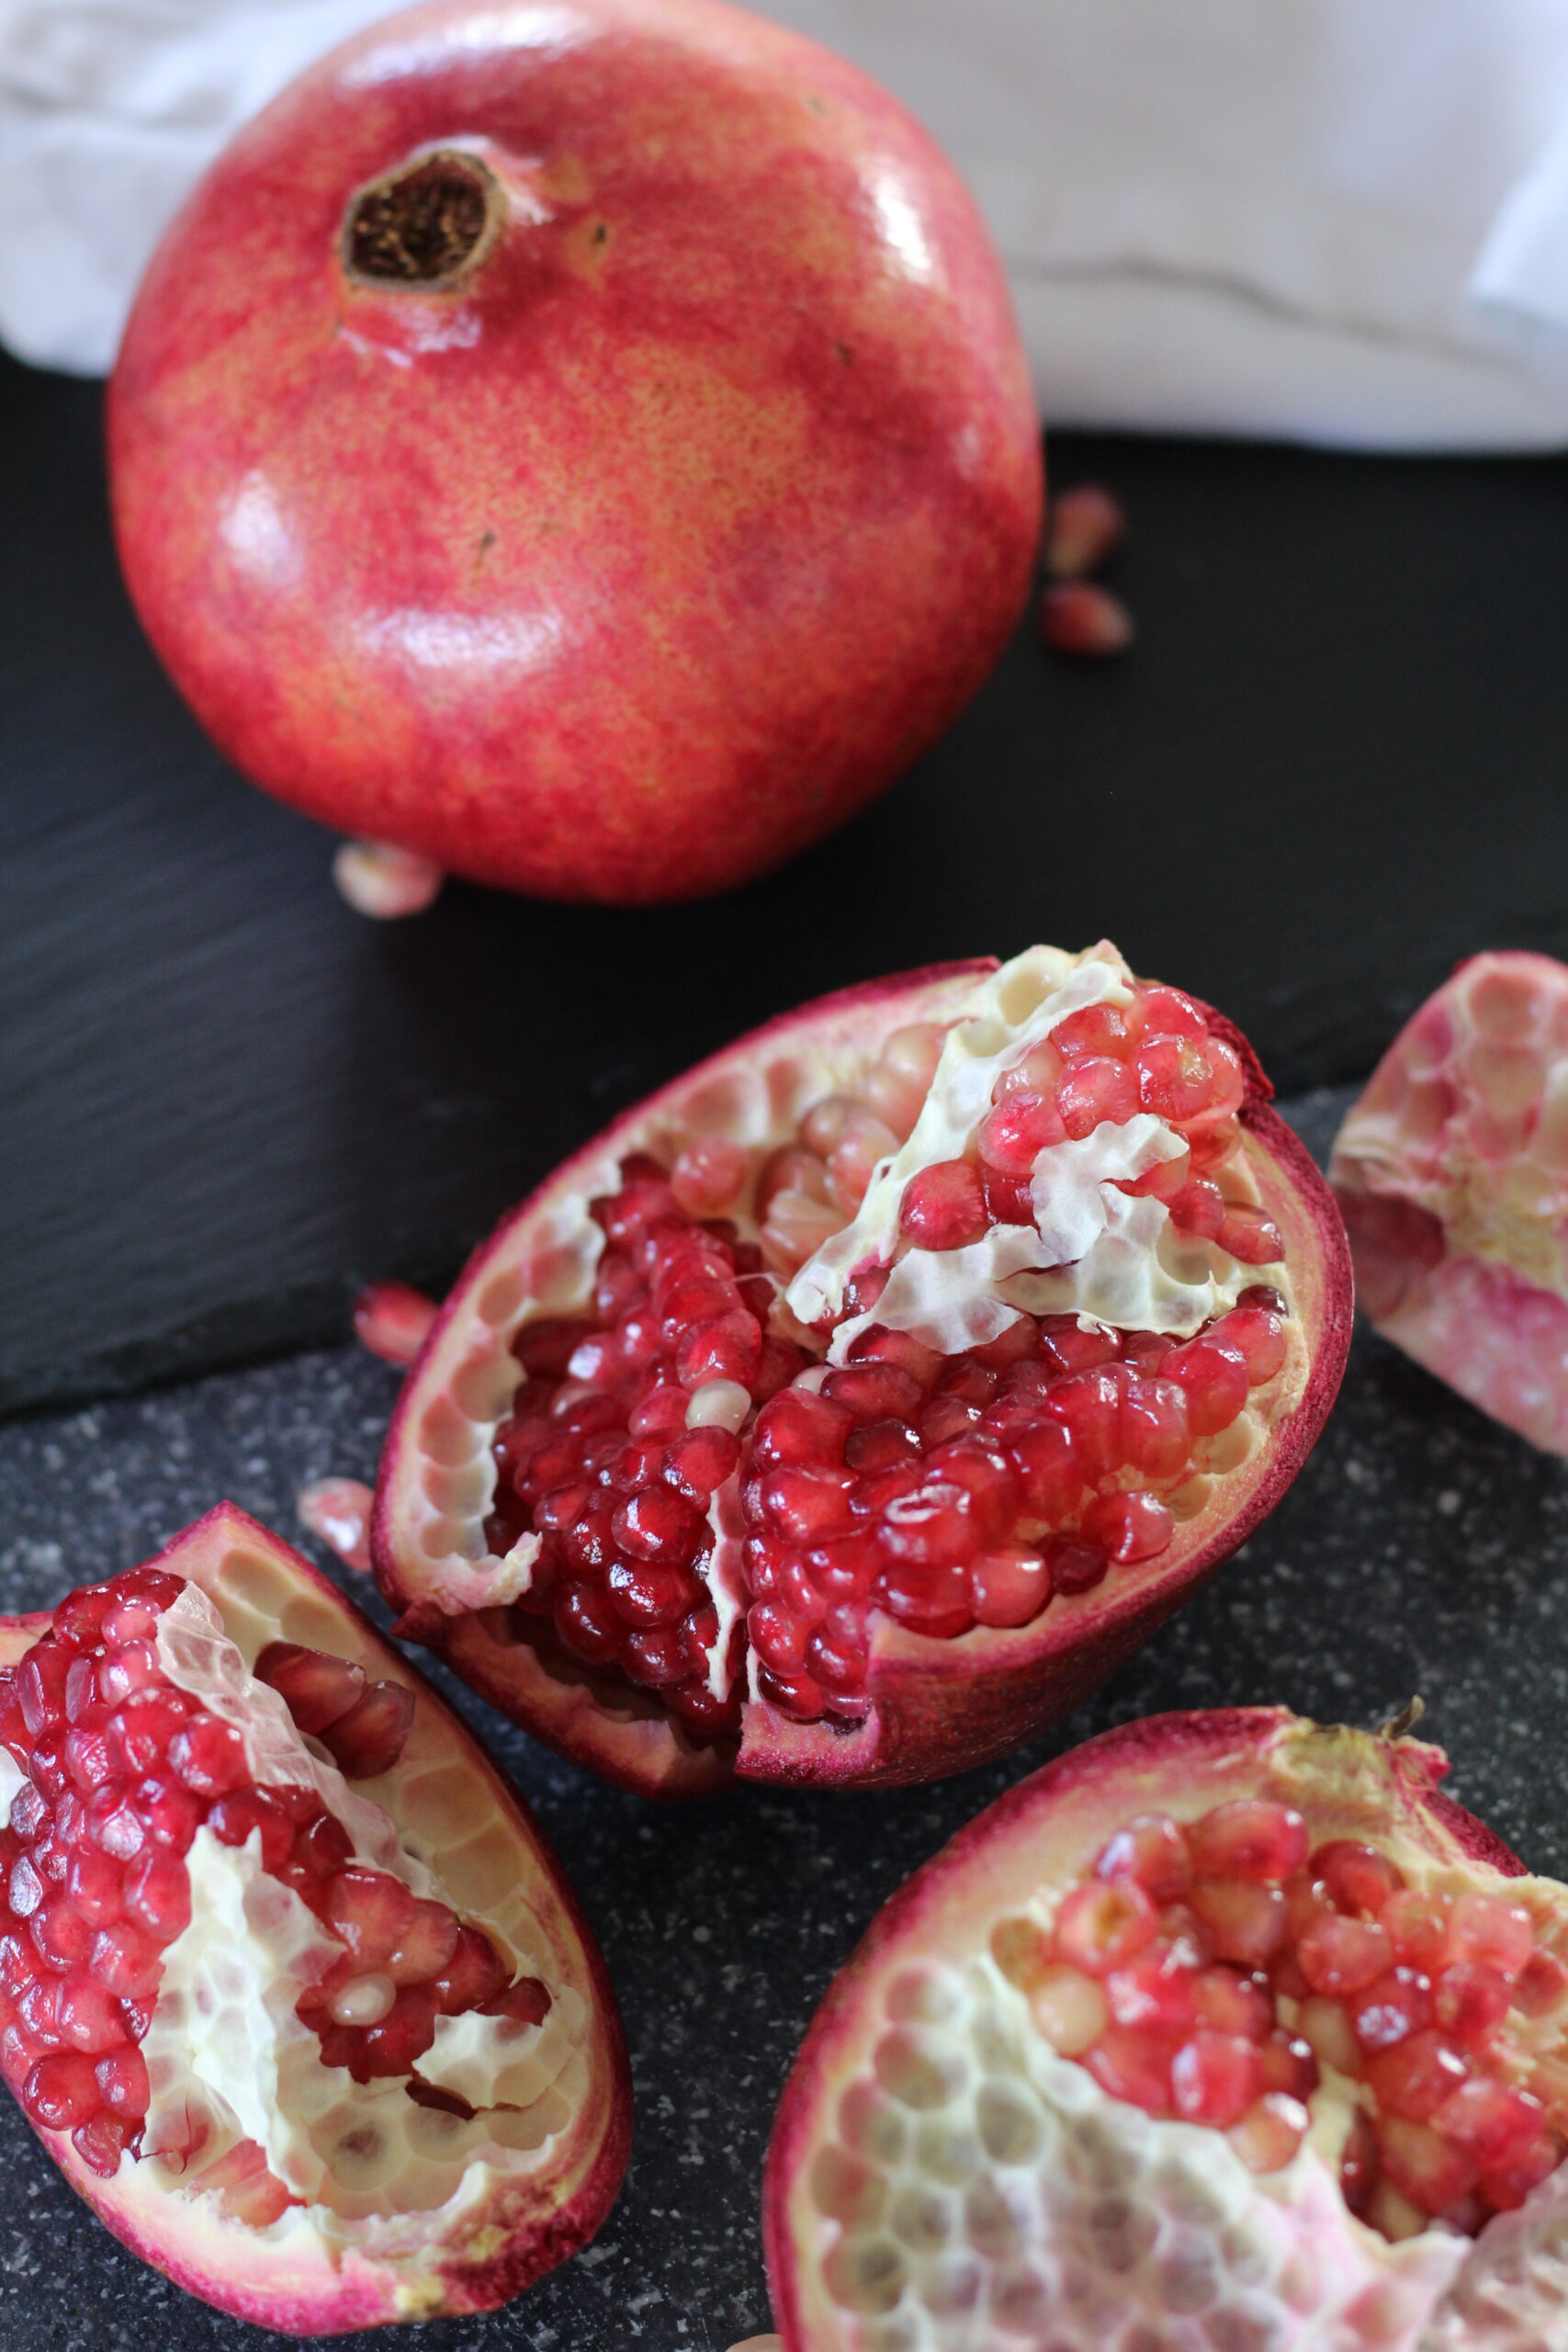 How to Cut a Pomegranate & Get the Seeds Out